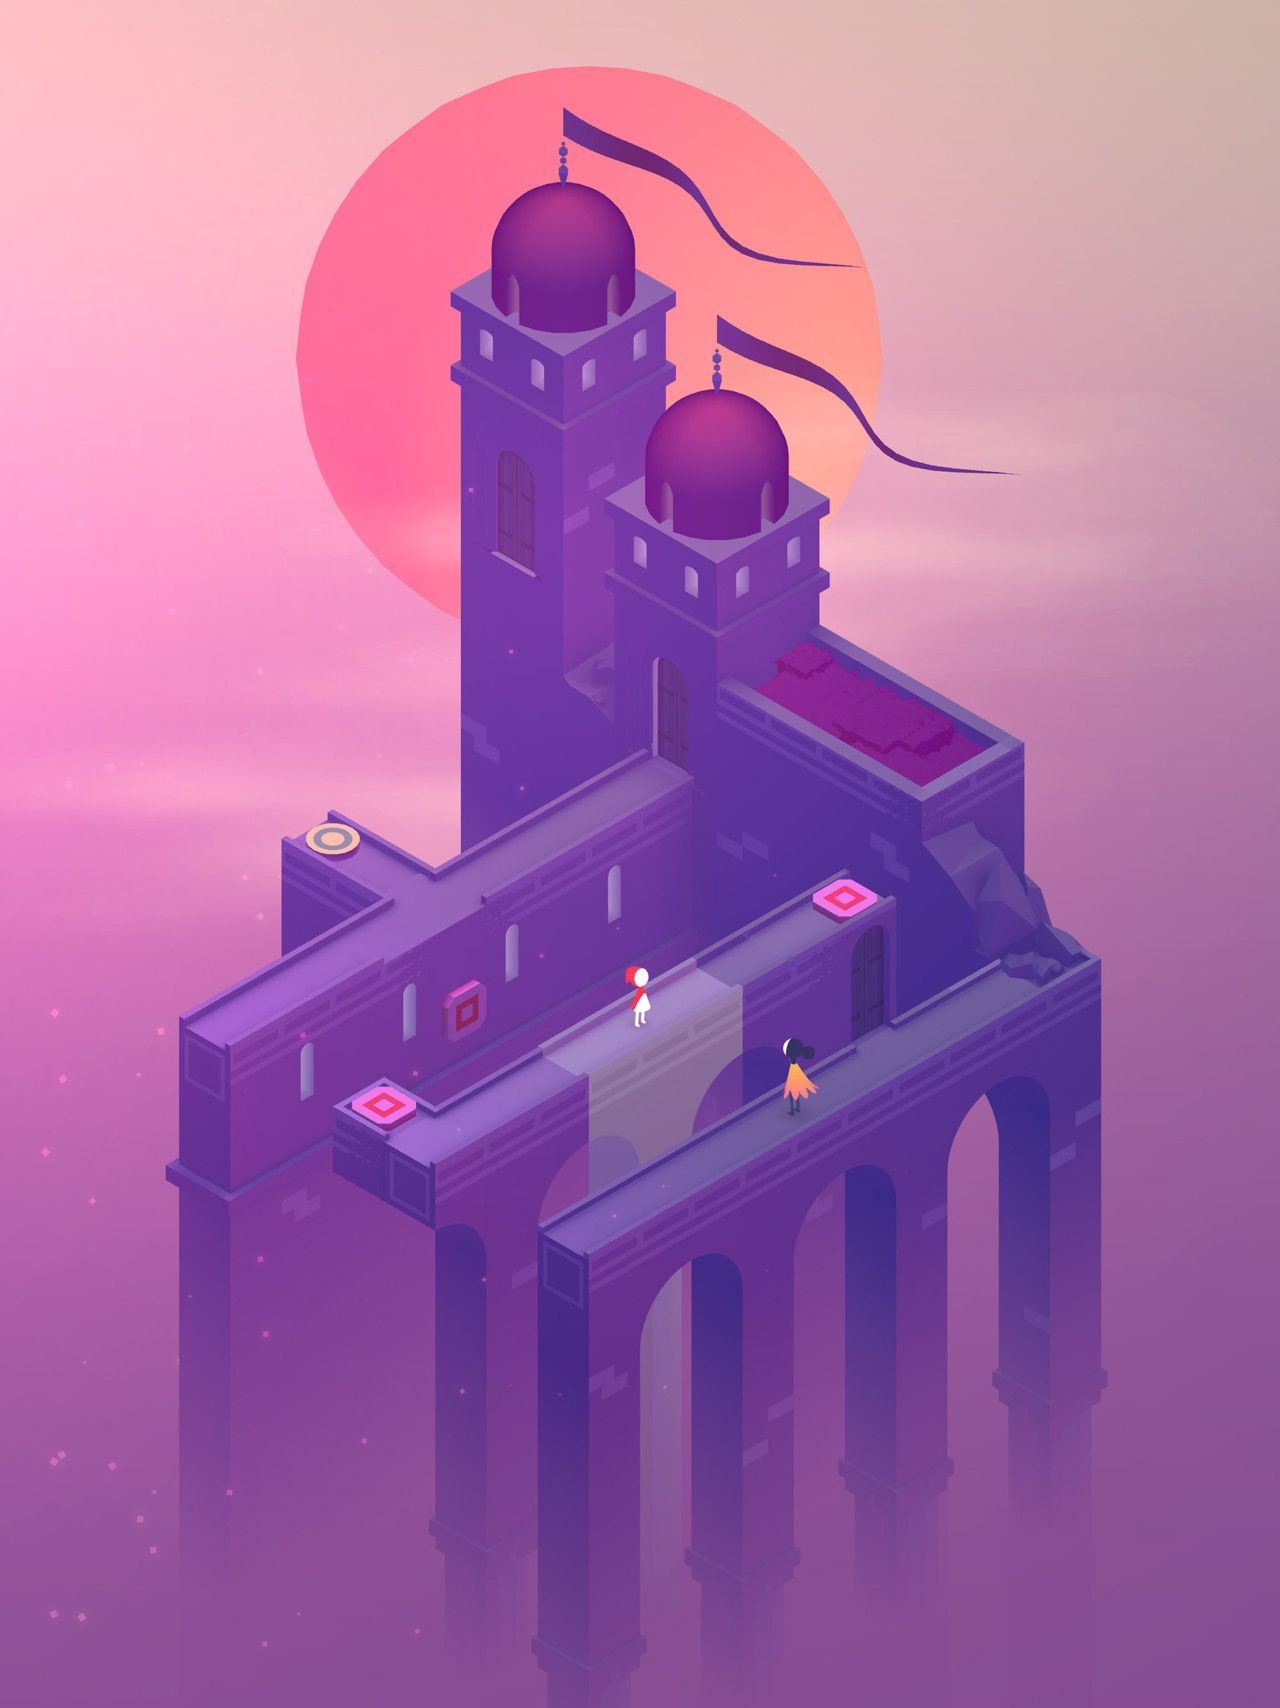 Monument Valley 2 Delves Deeper Into The Architecture Of The Imagination Monument Valley Game Monument Valley App Monument Valley 2